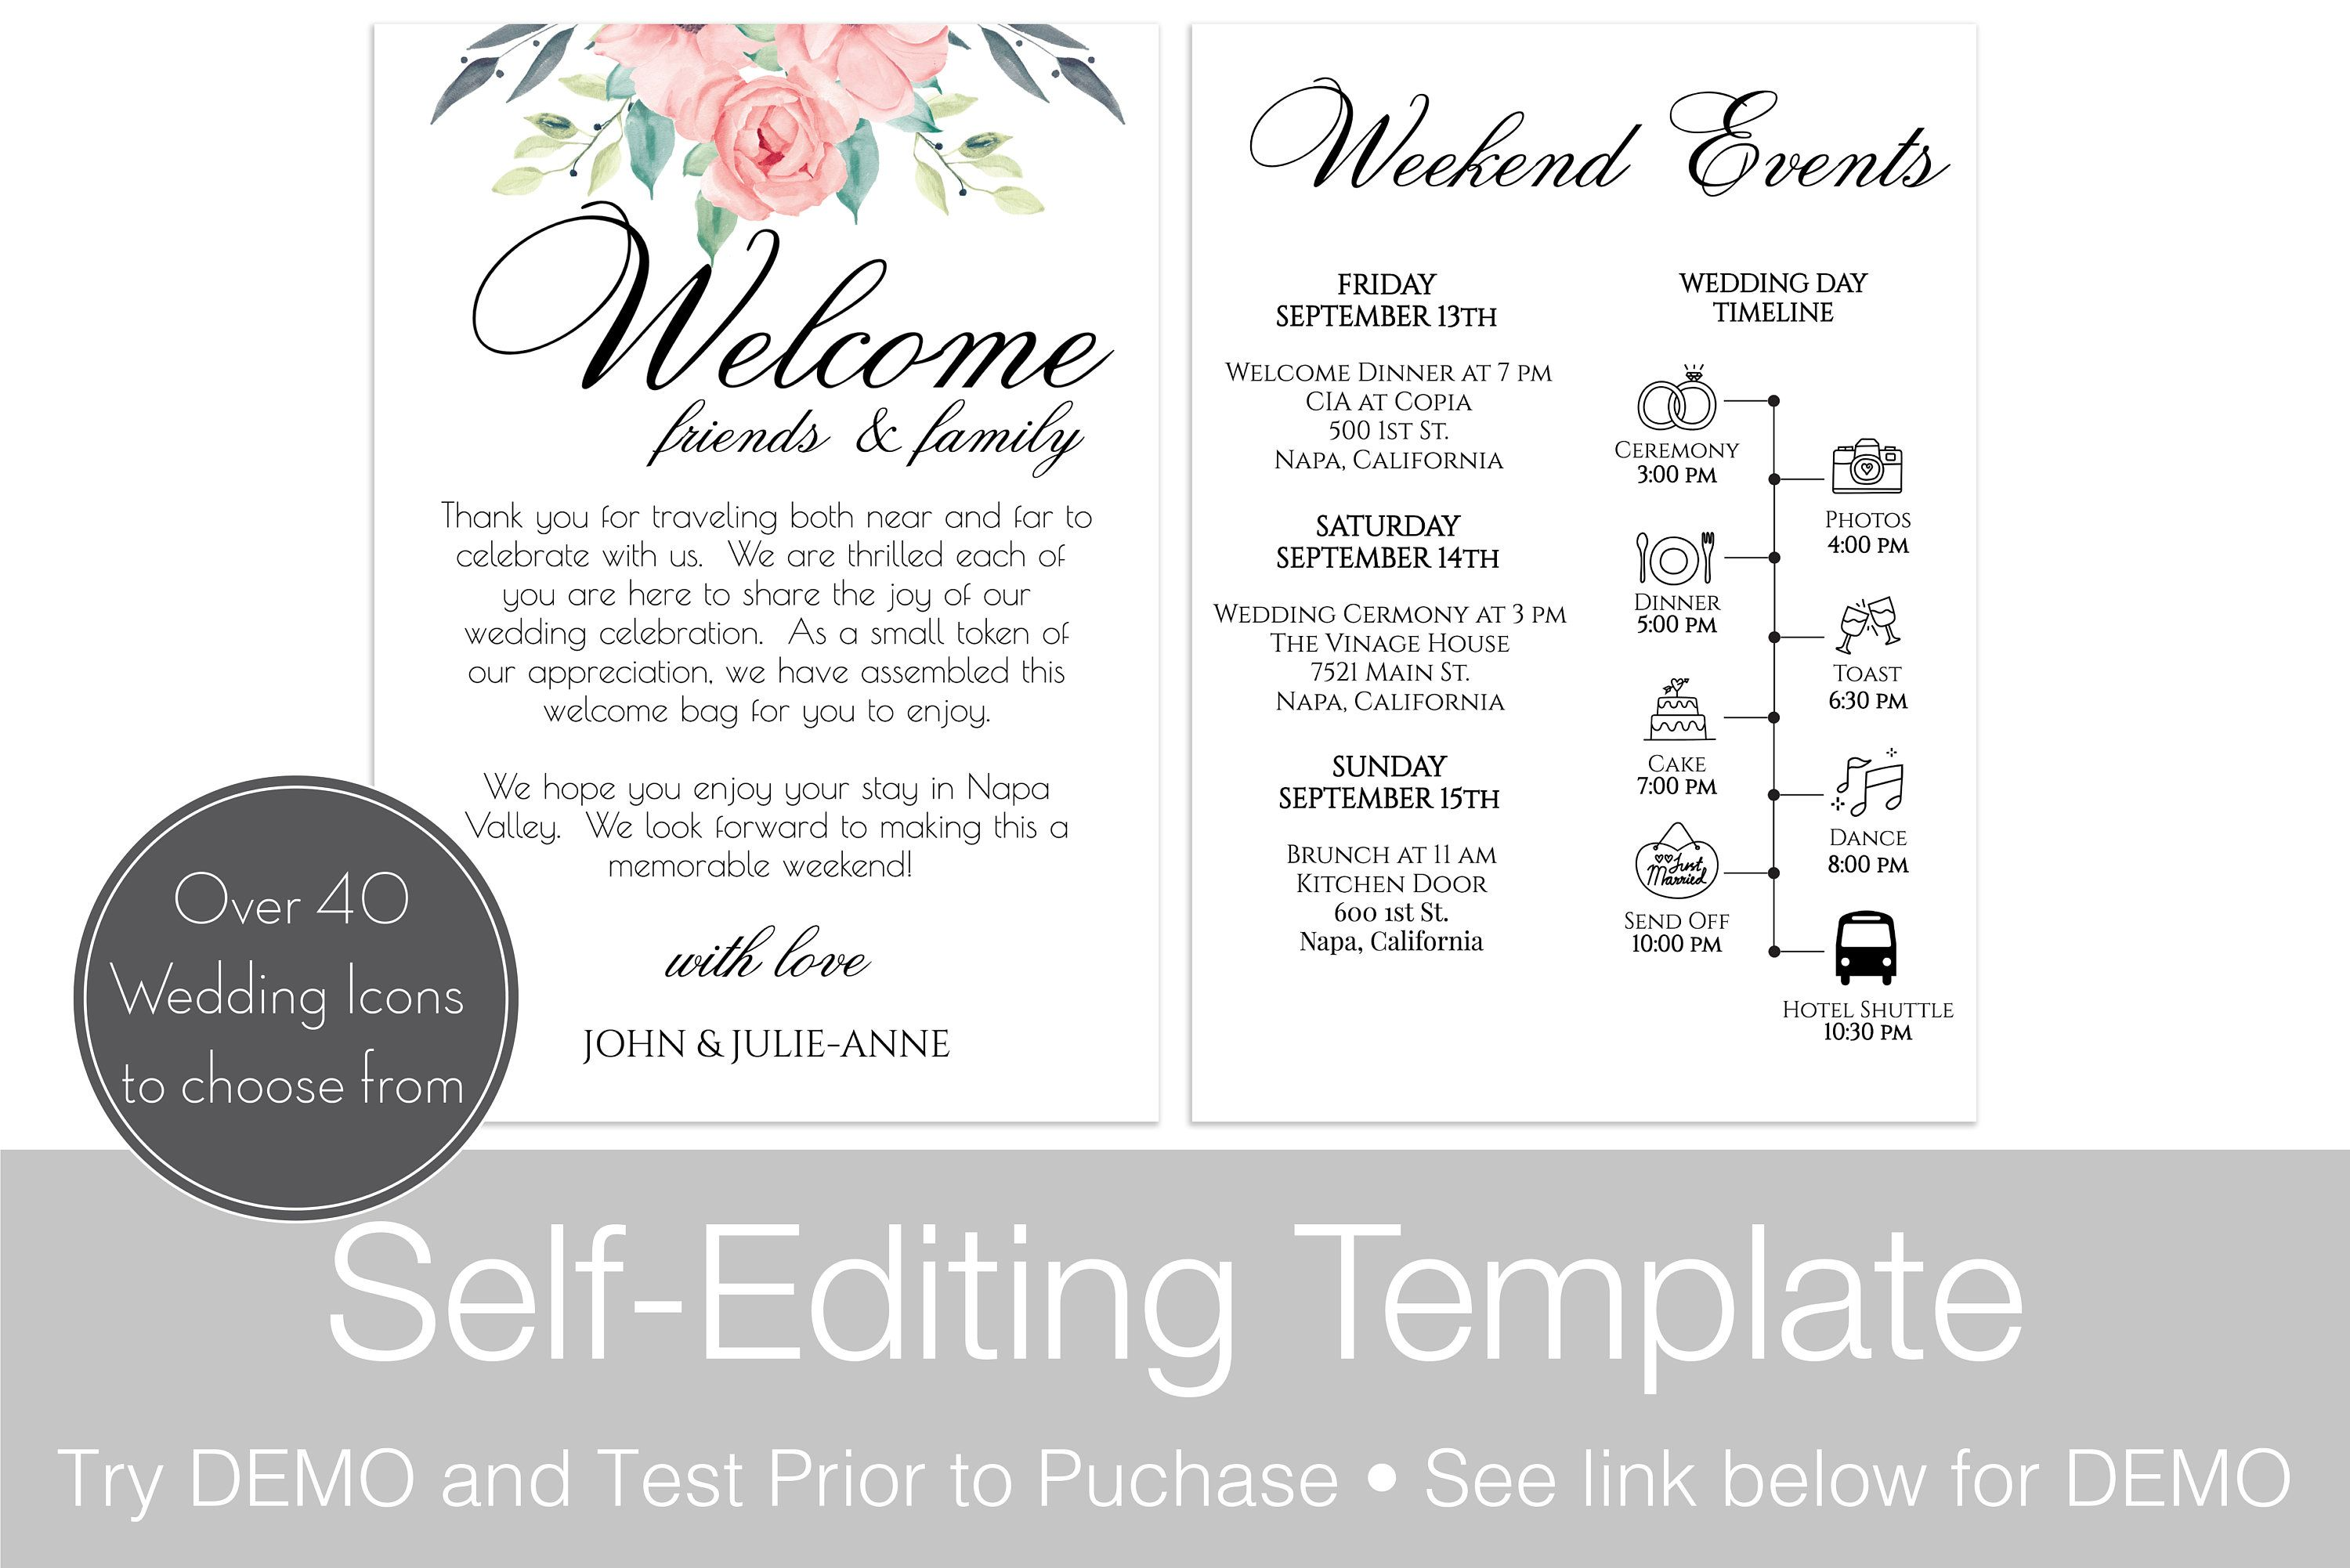 Wedding Itinerary Card Template Printable Timeline Welcome Bag Letter 100 Editable Agenda Diy Blush Florals Instant Download Ppw0220 Wedding Itinerary Wedding Timeline Template Diy Agenda